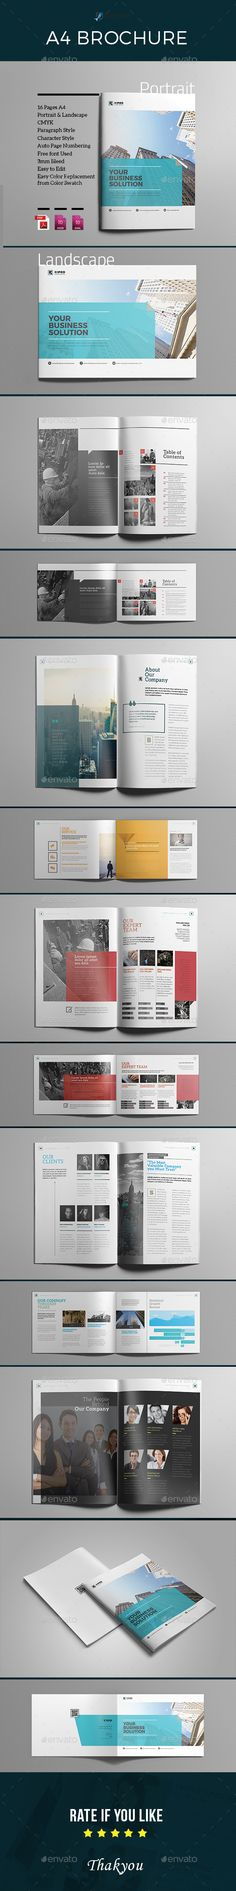 A4 Indesign Brochure